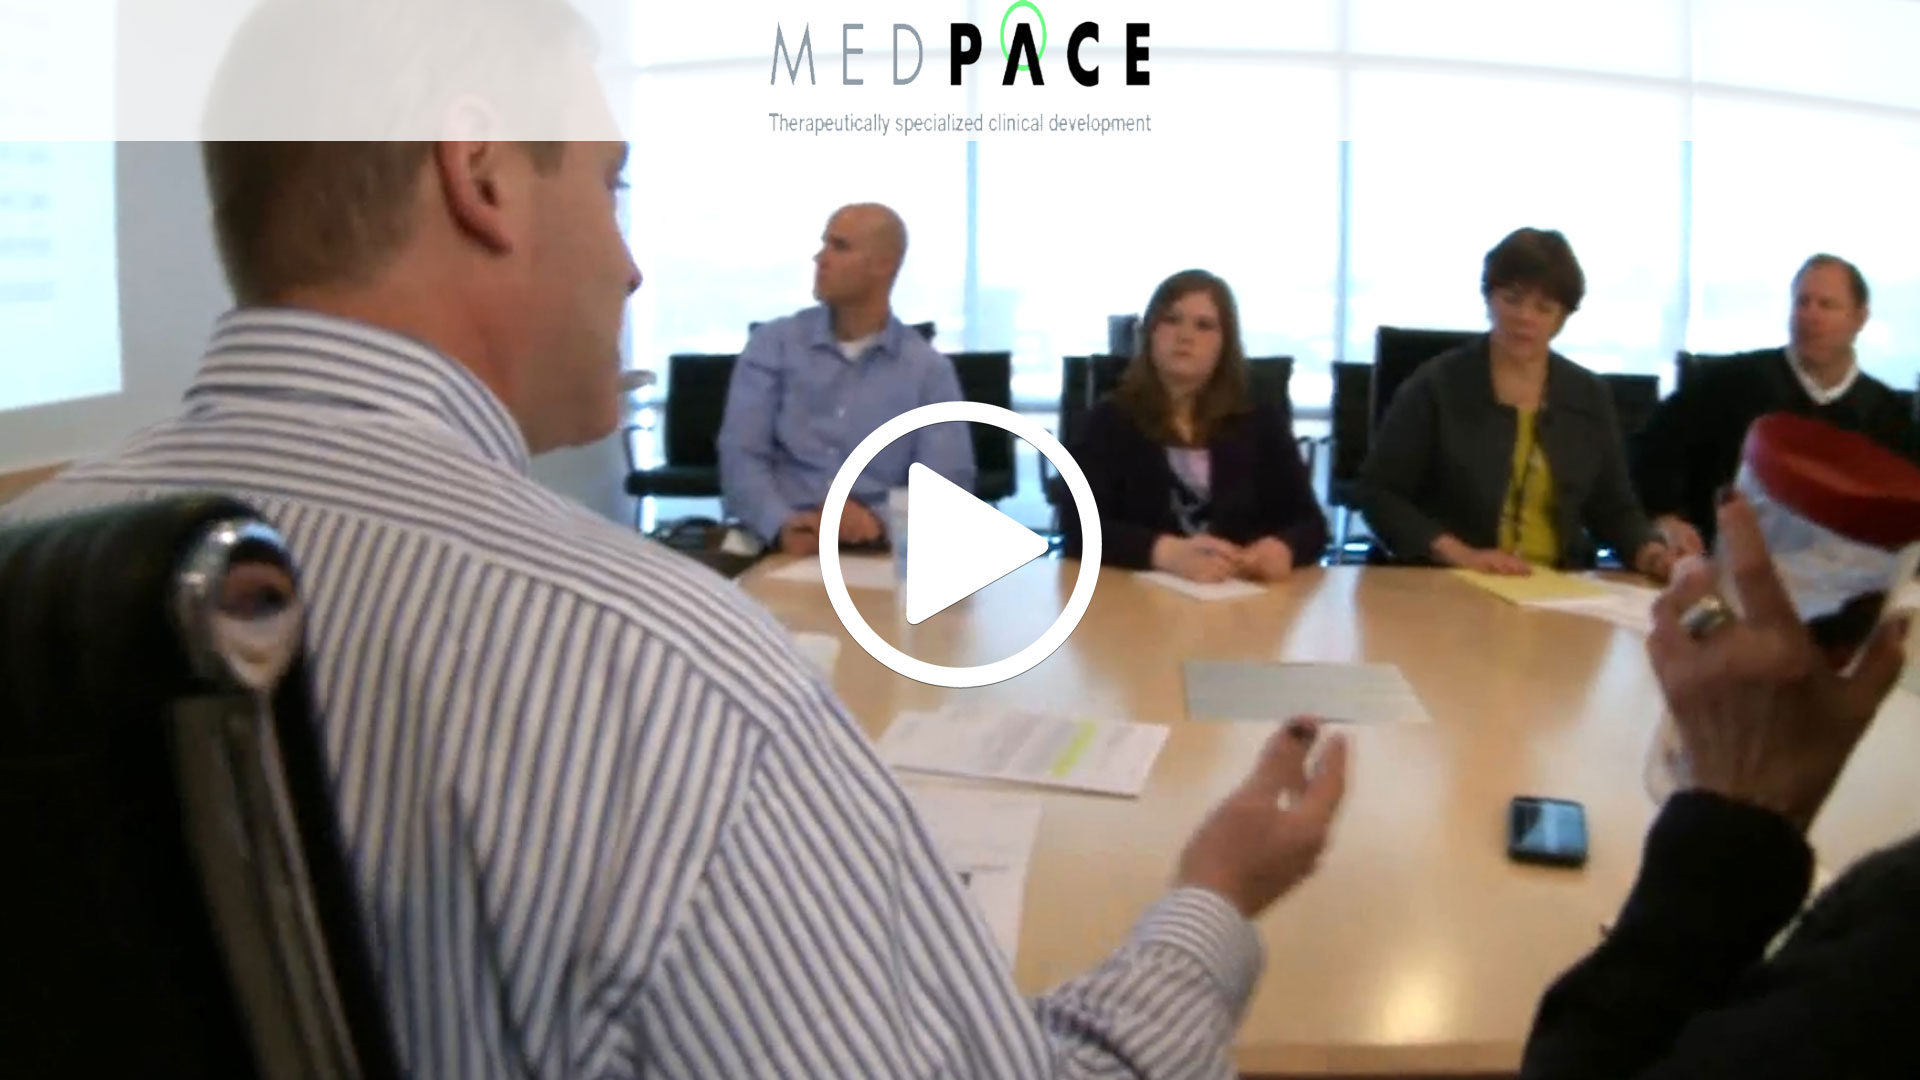 Watch our careers video for available job opening Clinical Trial Manager in Boston; Cincinnati; Dallas, MA; OH; TX